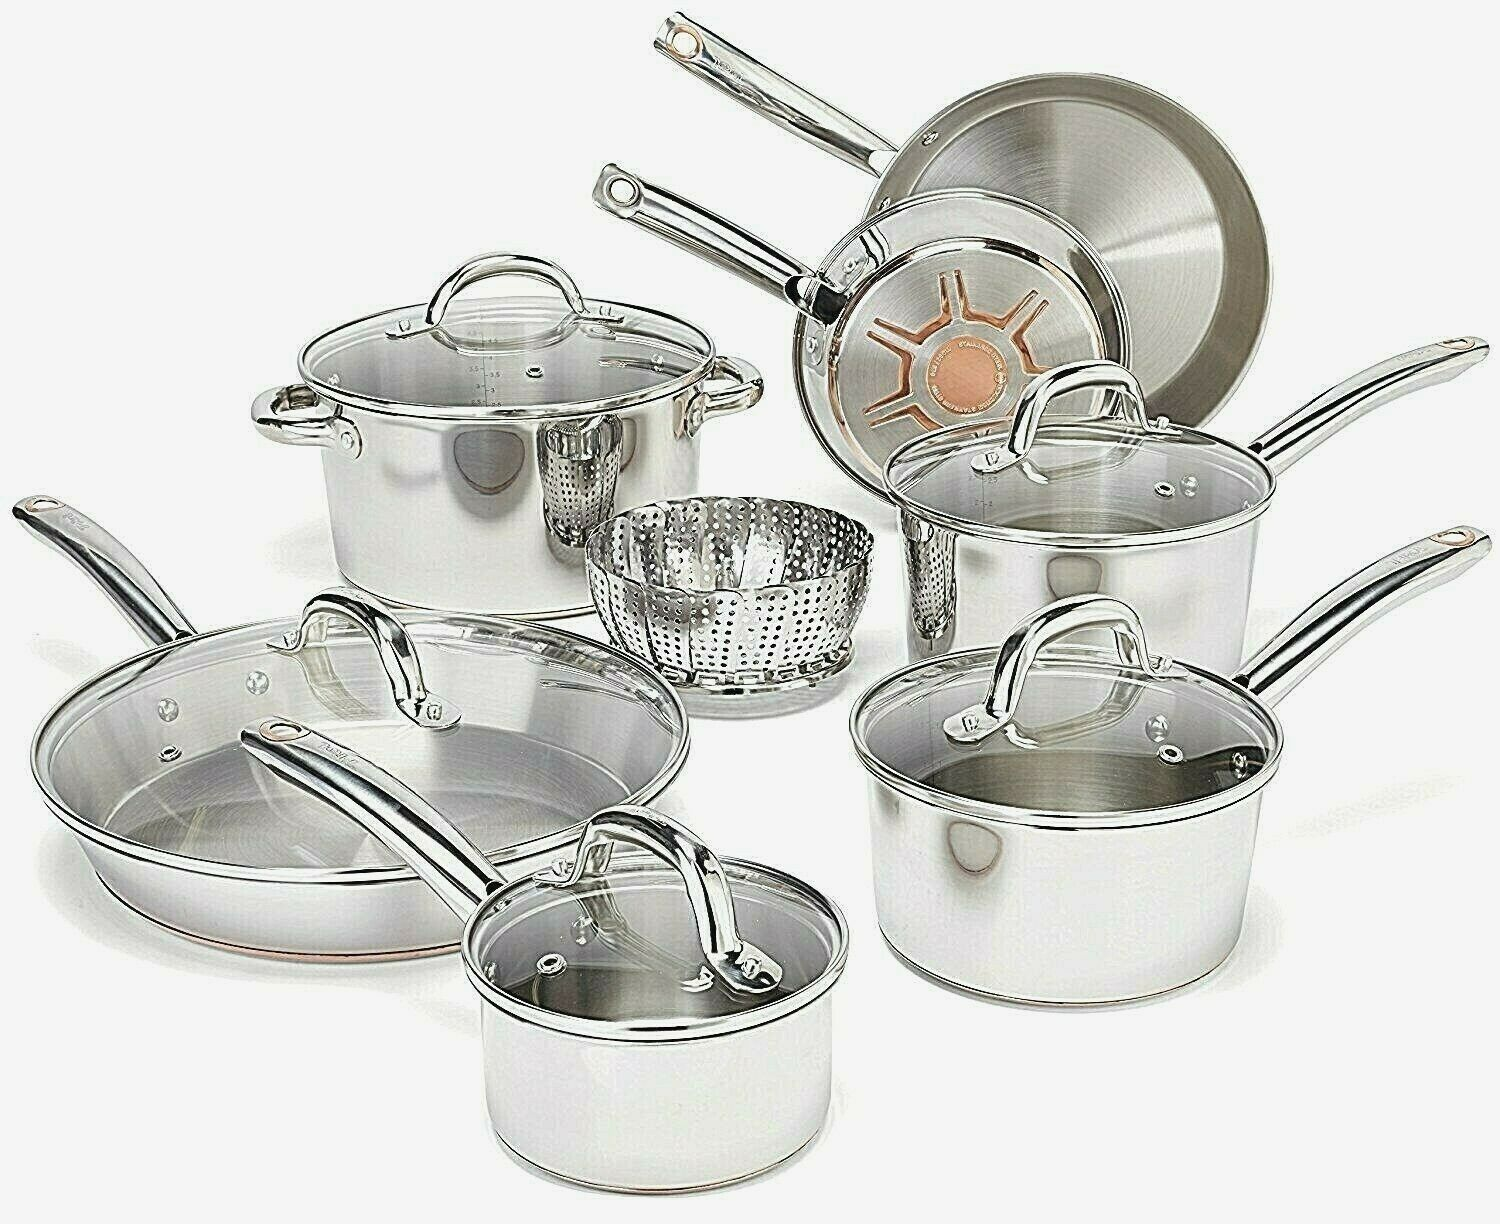 T-fal Cookware Set Pots and Pans 13 Piece Stainless Steel wi